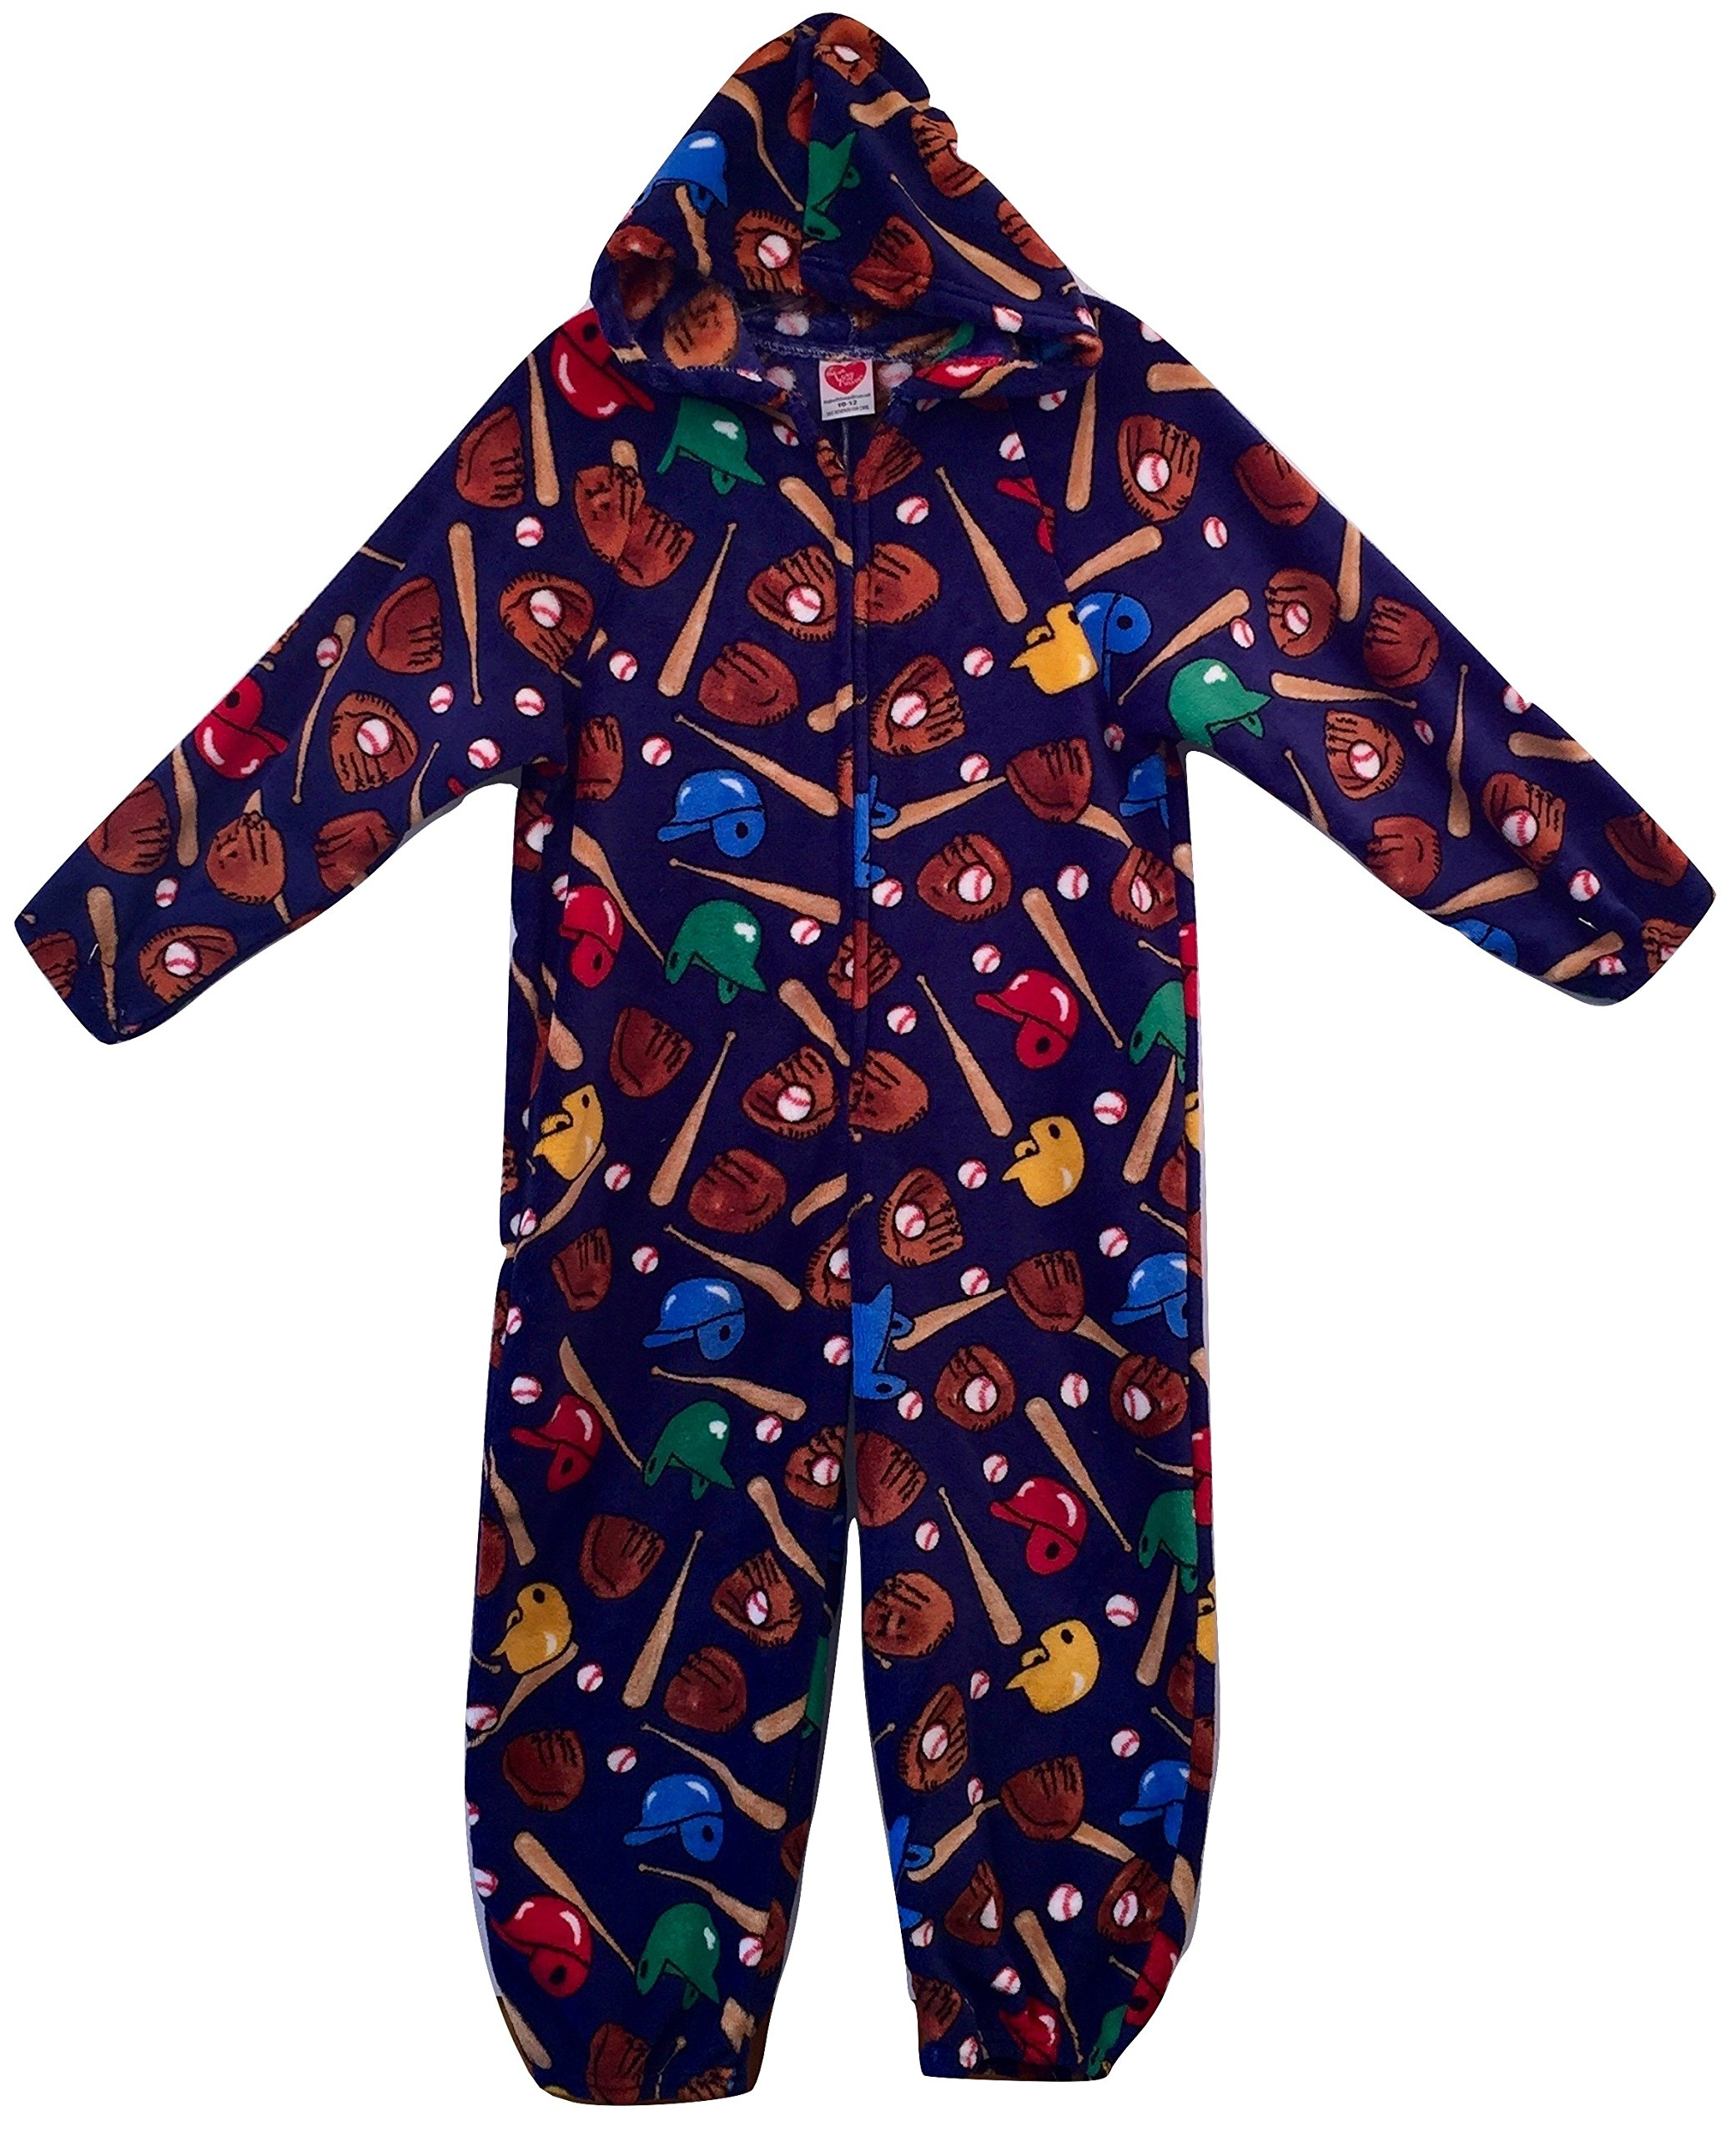 Made with Love and Kisses Adult's Fuzzy Plush Jumpsuit/One Piece Pajama With Hood - Navy Baseball - M/L